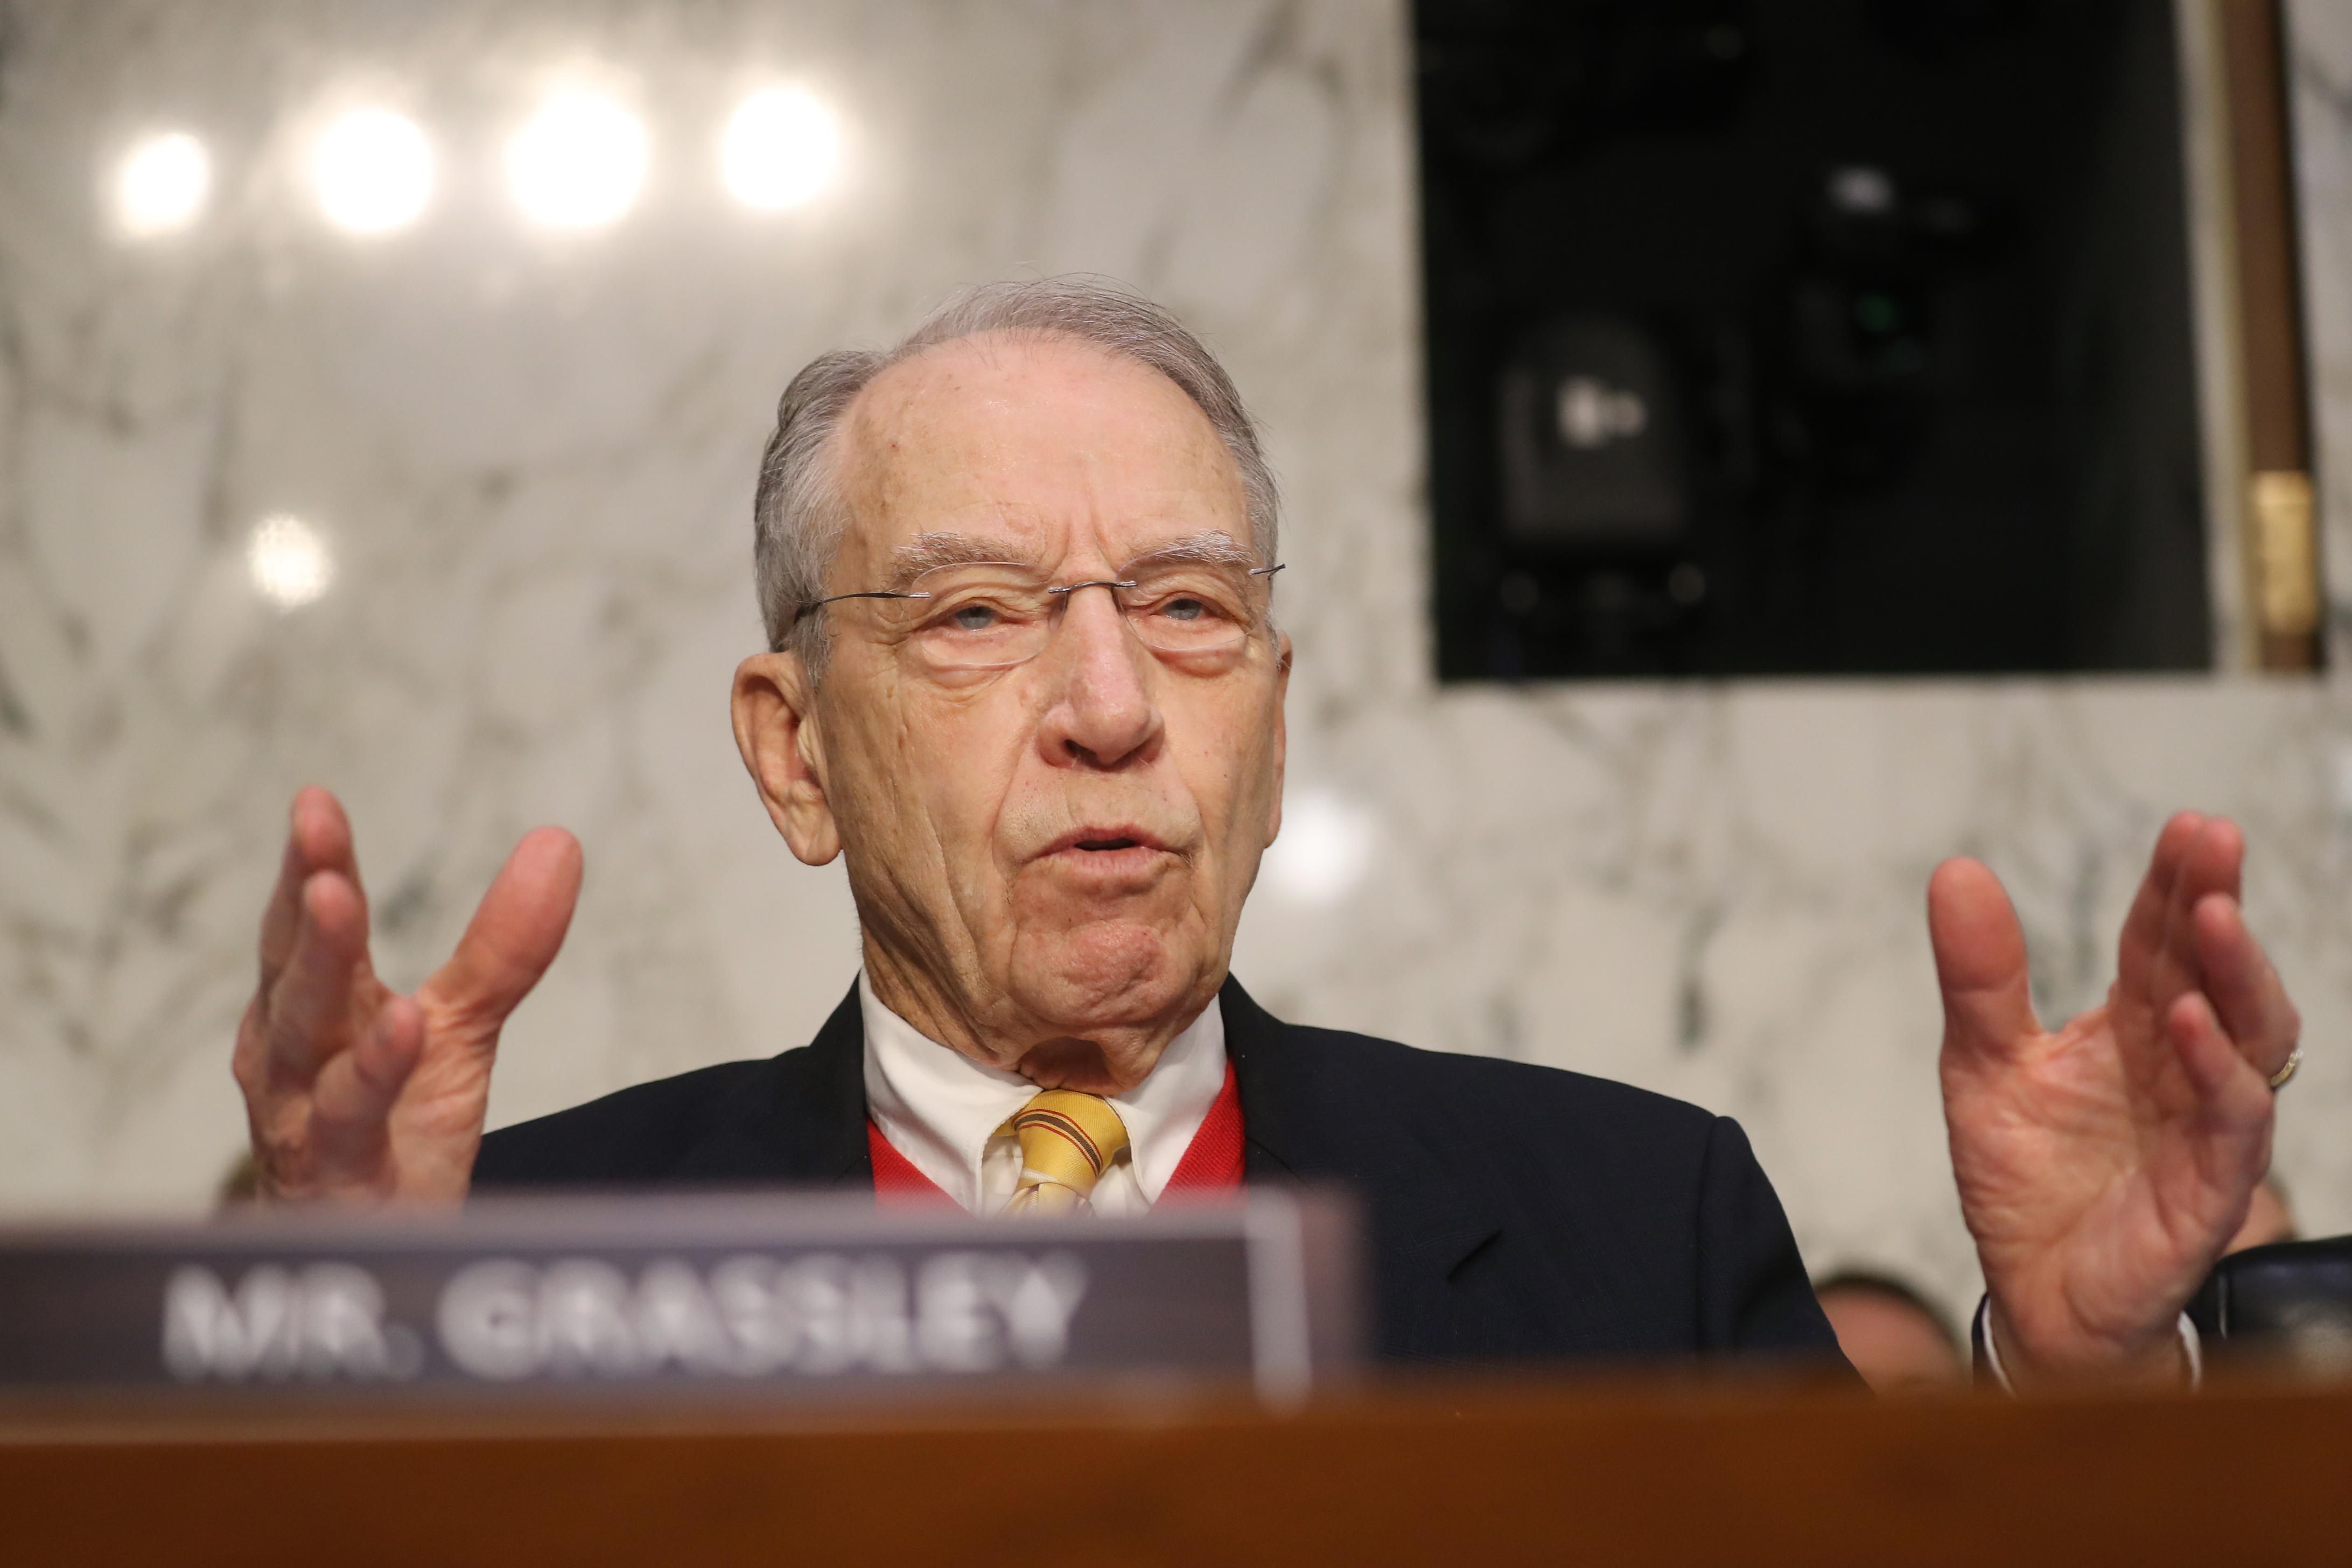 Sen. Grassley: The president is 'a little bit wrong' on national emergency